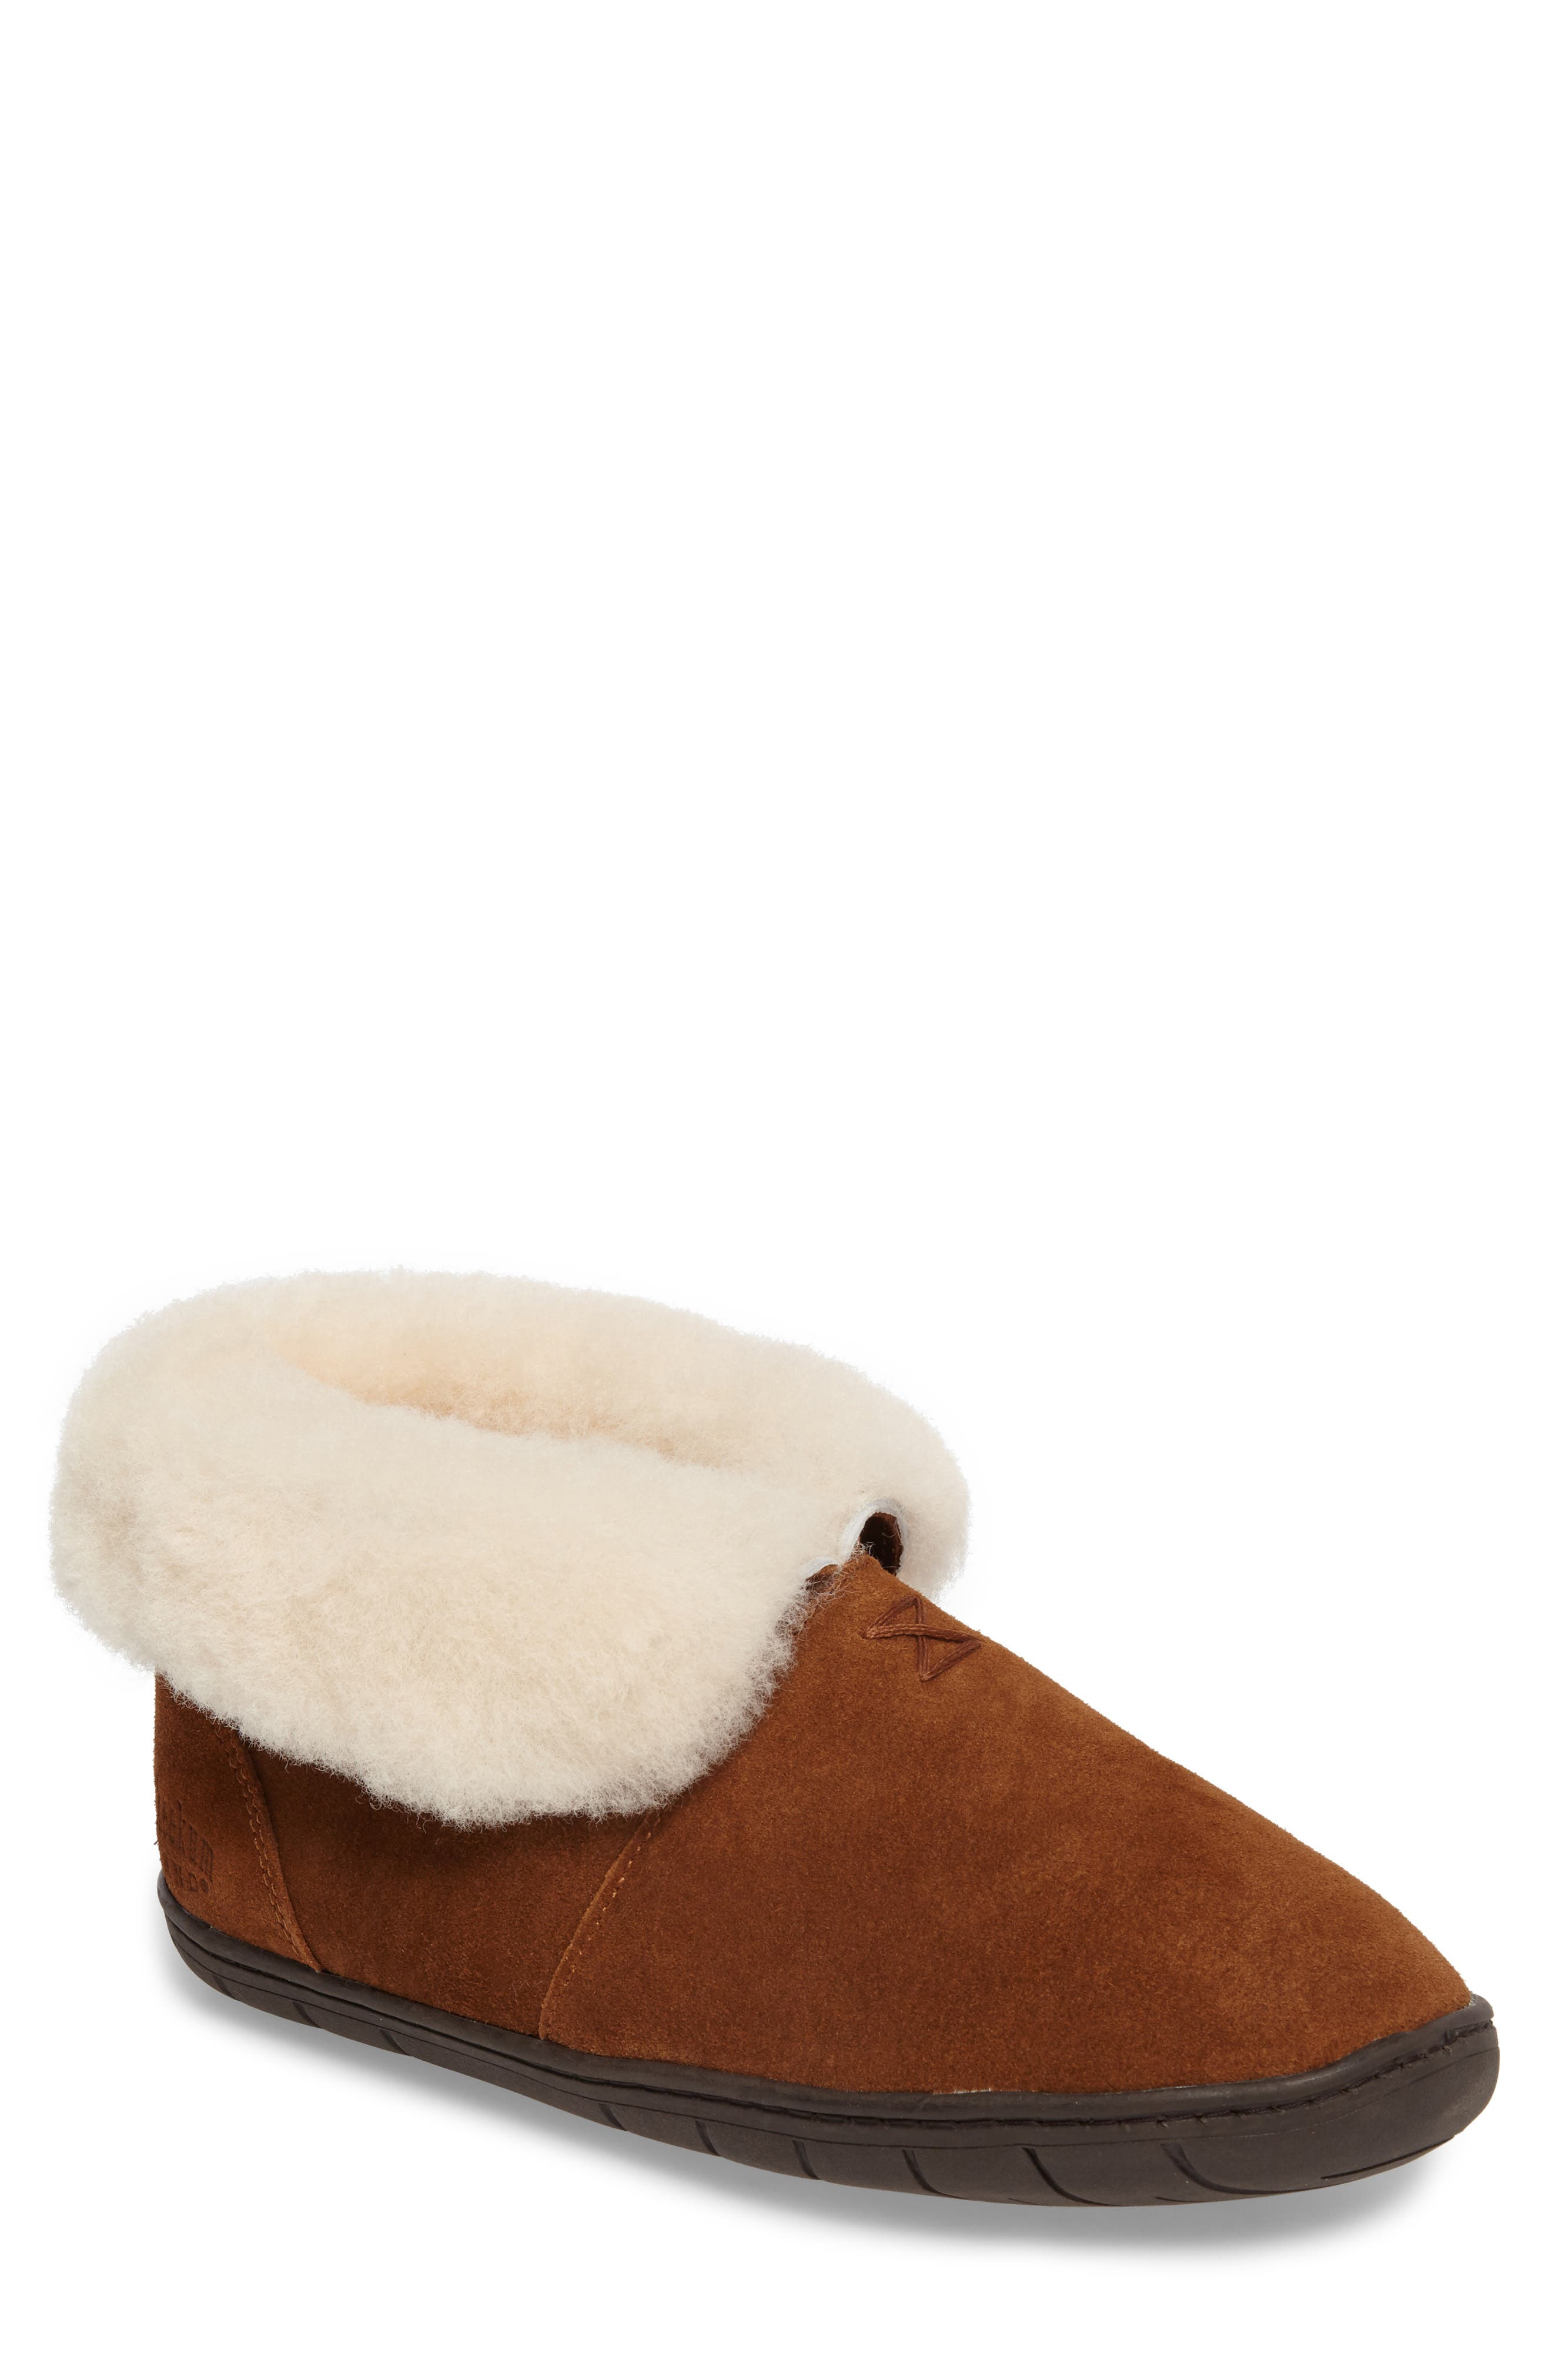 Tundra Slipper Bootie with Genuine Shearling Lining,                             Main thumbnail 1, color,                             212